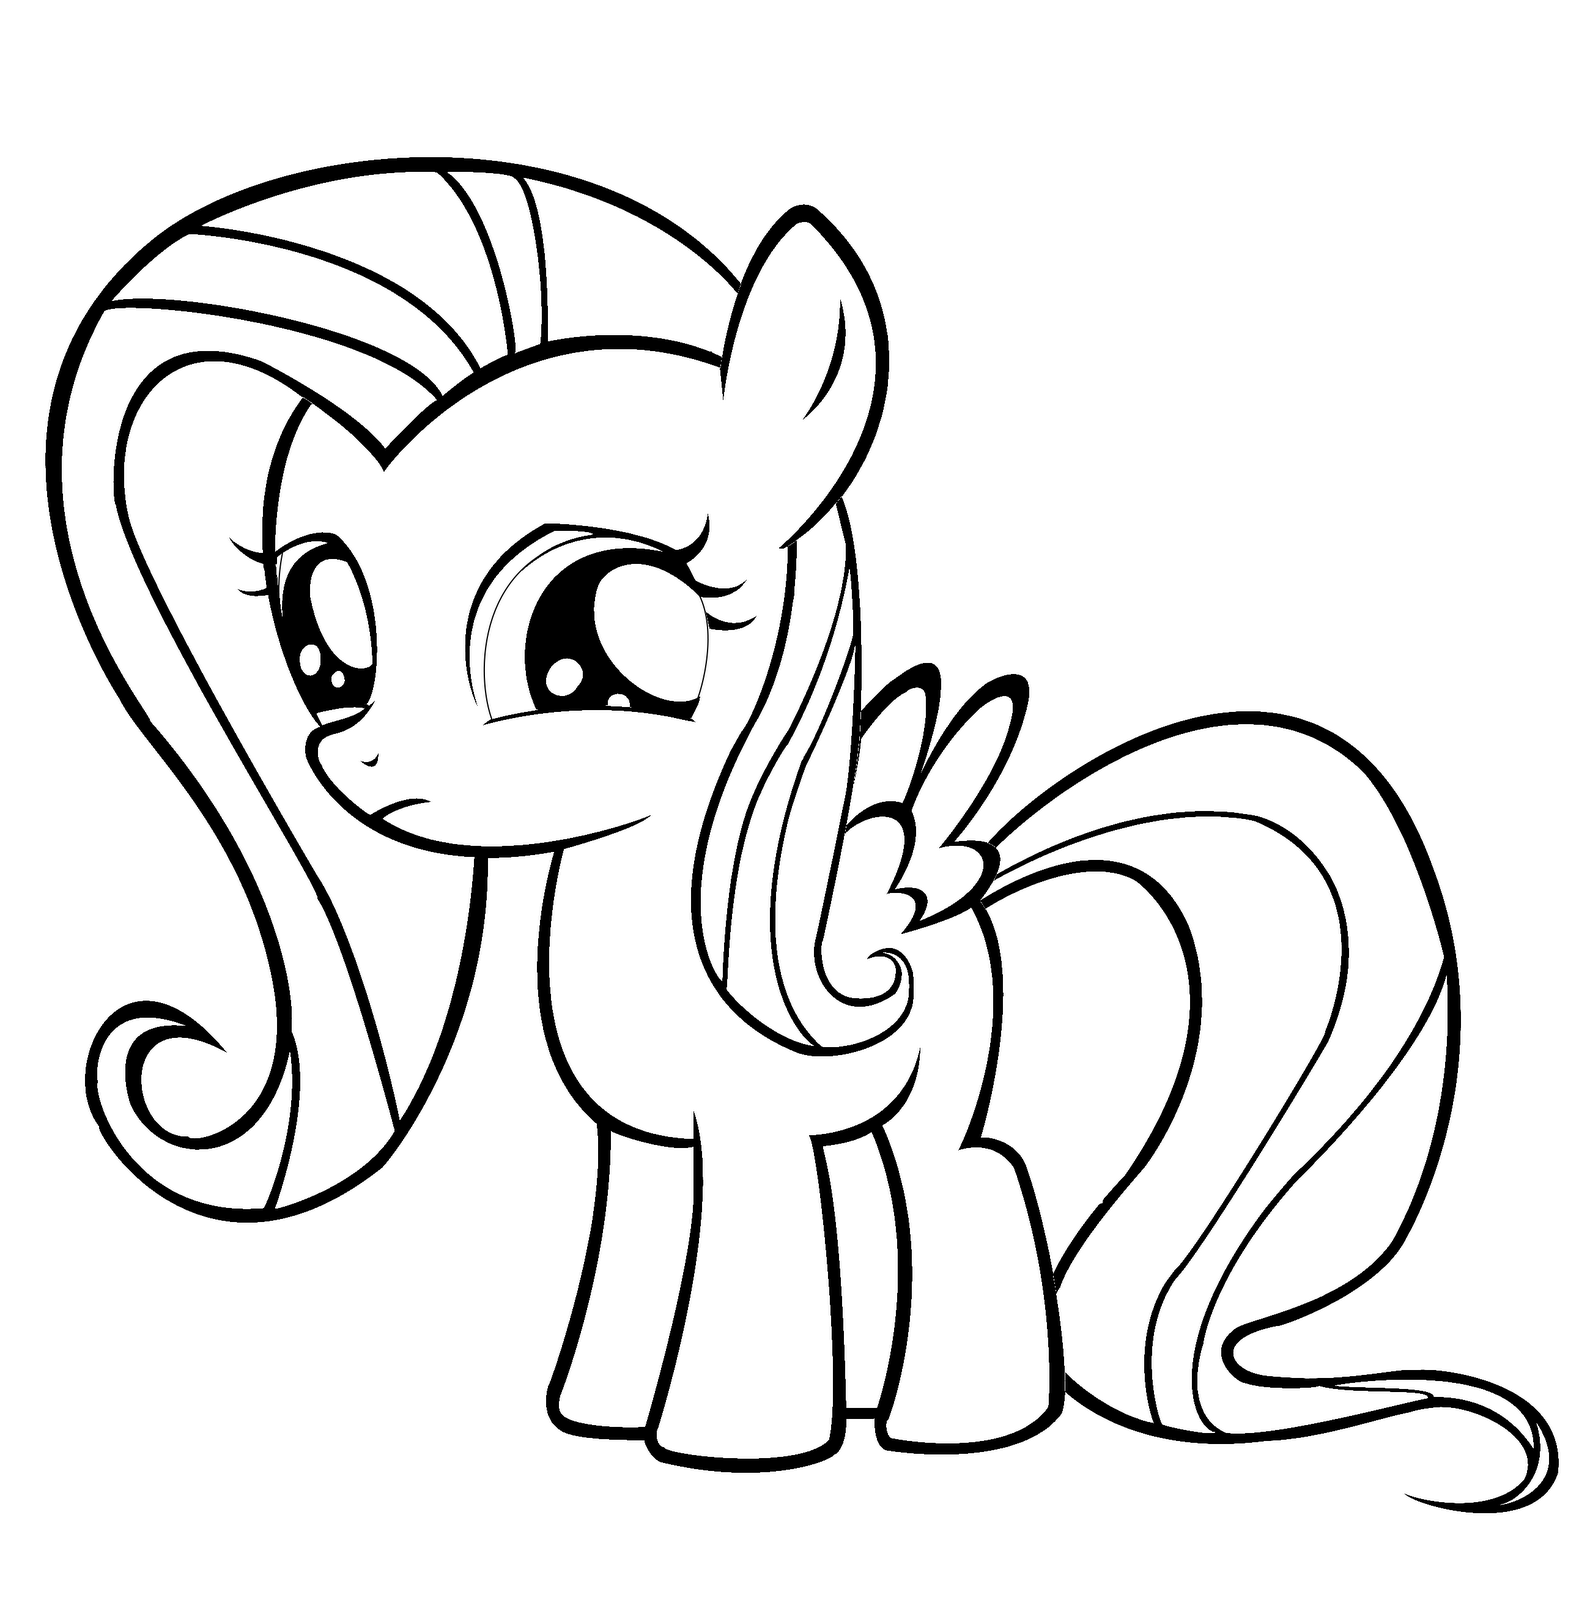 Fluttershy Coloring Pages Best Coloring Pages For Kids Coloring Book Pages To Print Free